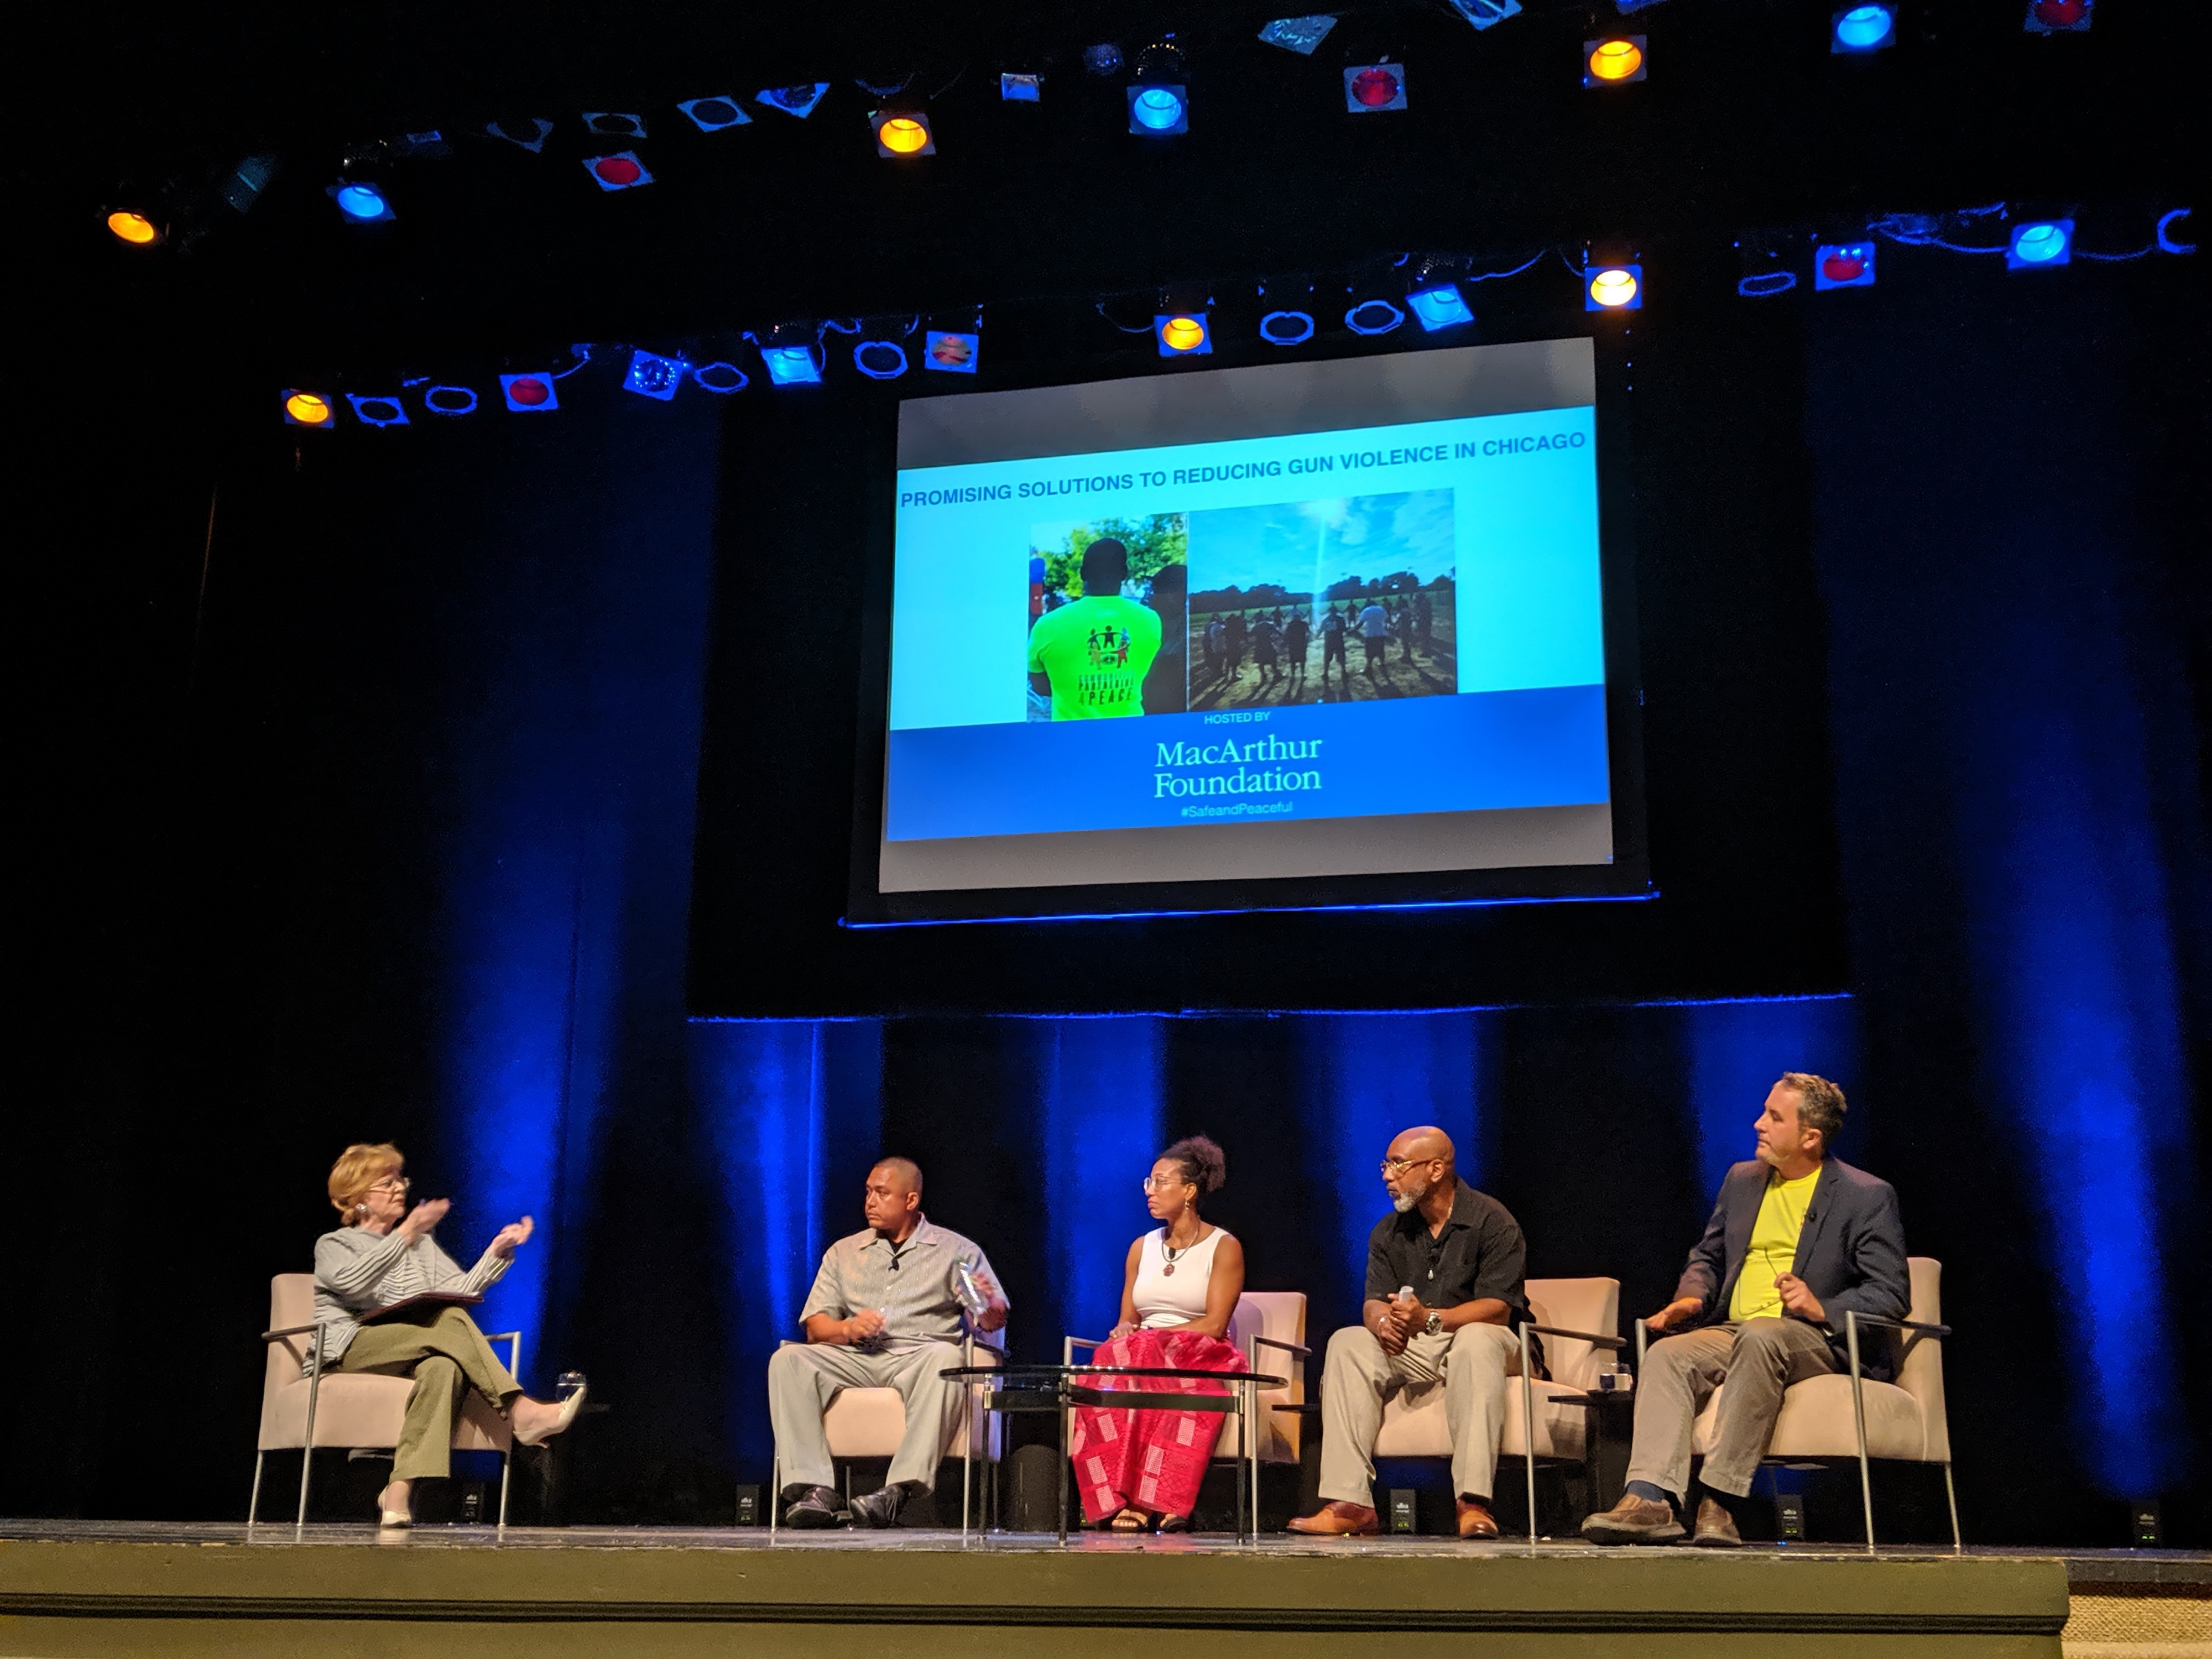 Panelists sit on stage. From left to right: Julia Stasch, Jorge Matos, Tanya Woods, Billy Moore, and Teny Gross.